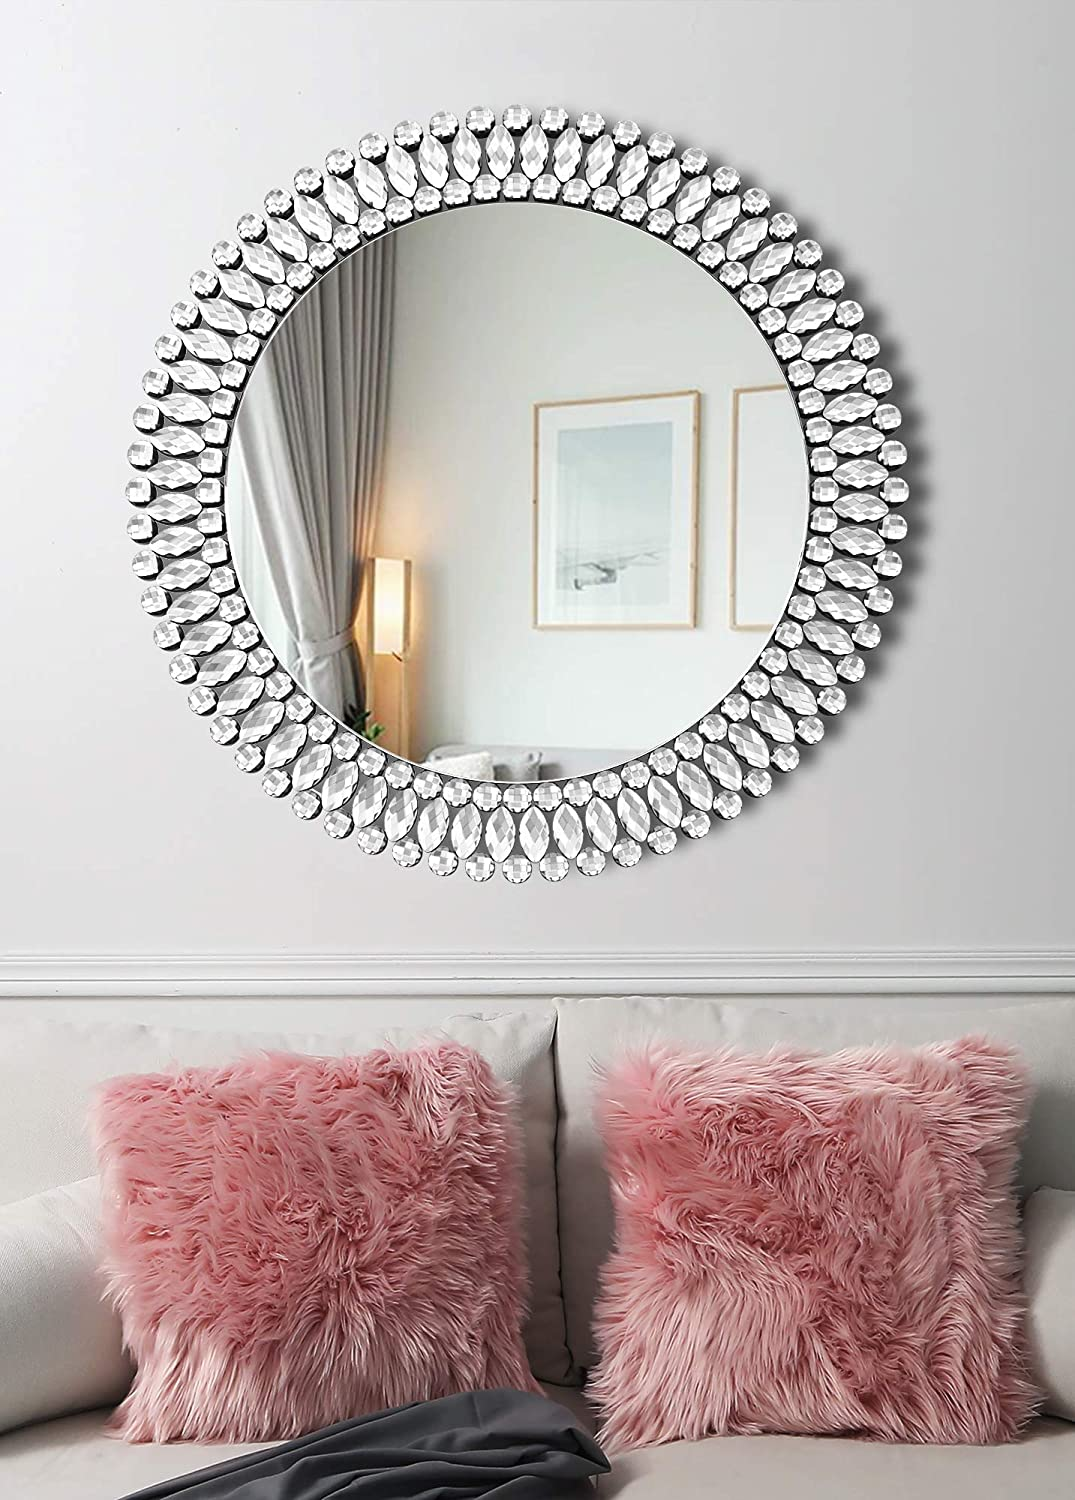 Elegant Circle Decor Wall Mirror - 31.5'' x 31.5'' Crystal Decor Mirror for Bedroom Entrance Living Room Dining Room Hallway